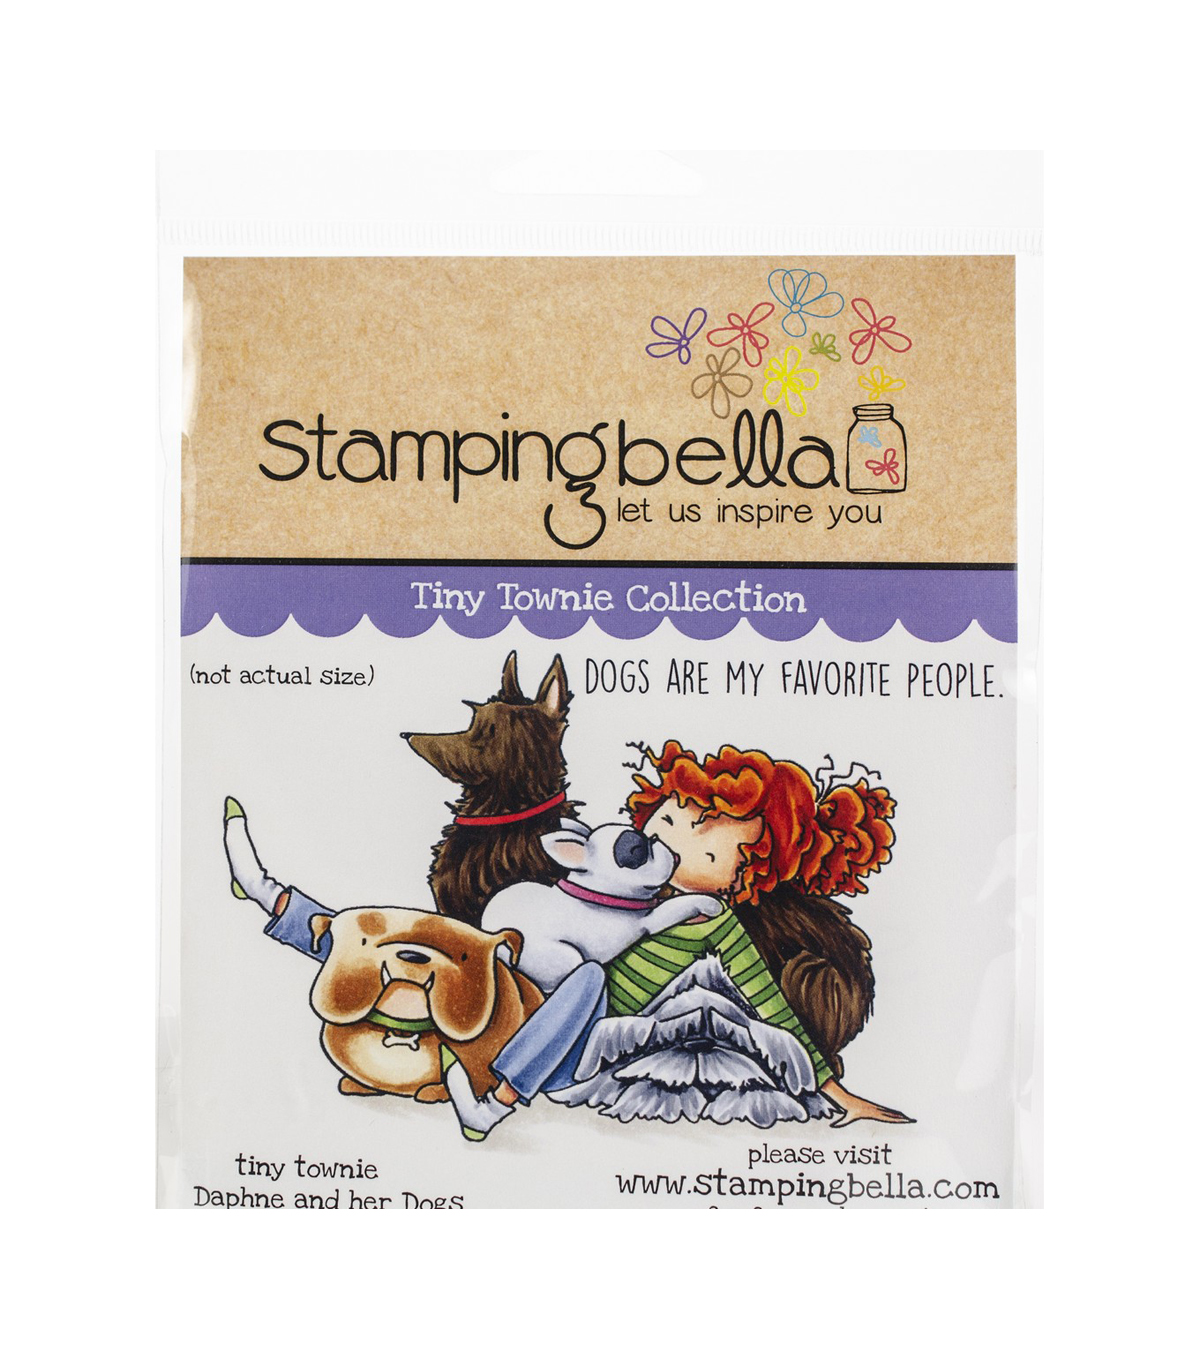 Stamping Bella 2 pk Rubber Cling Stamps-Tiny Townie Daphne & Her Dogs